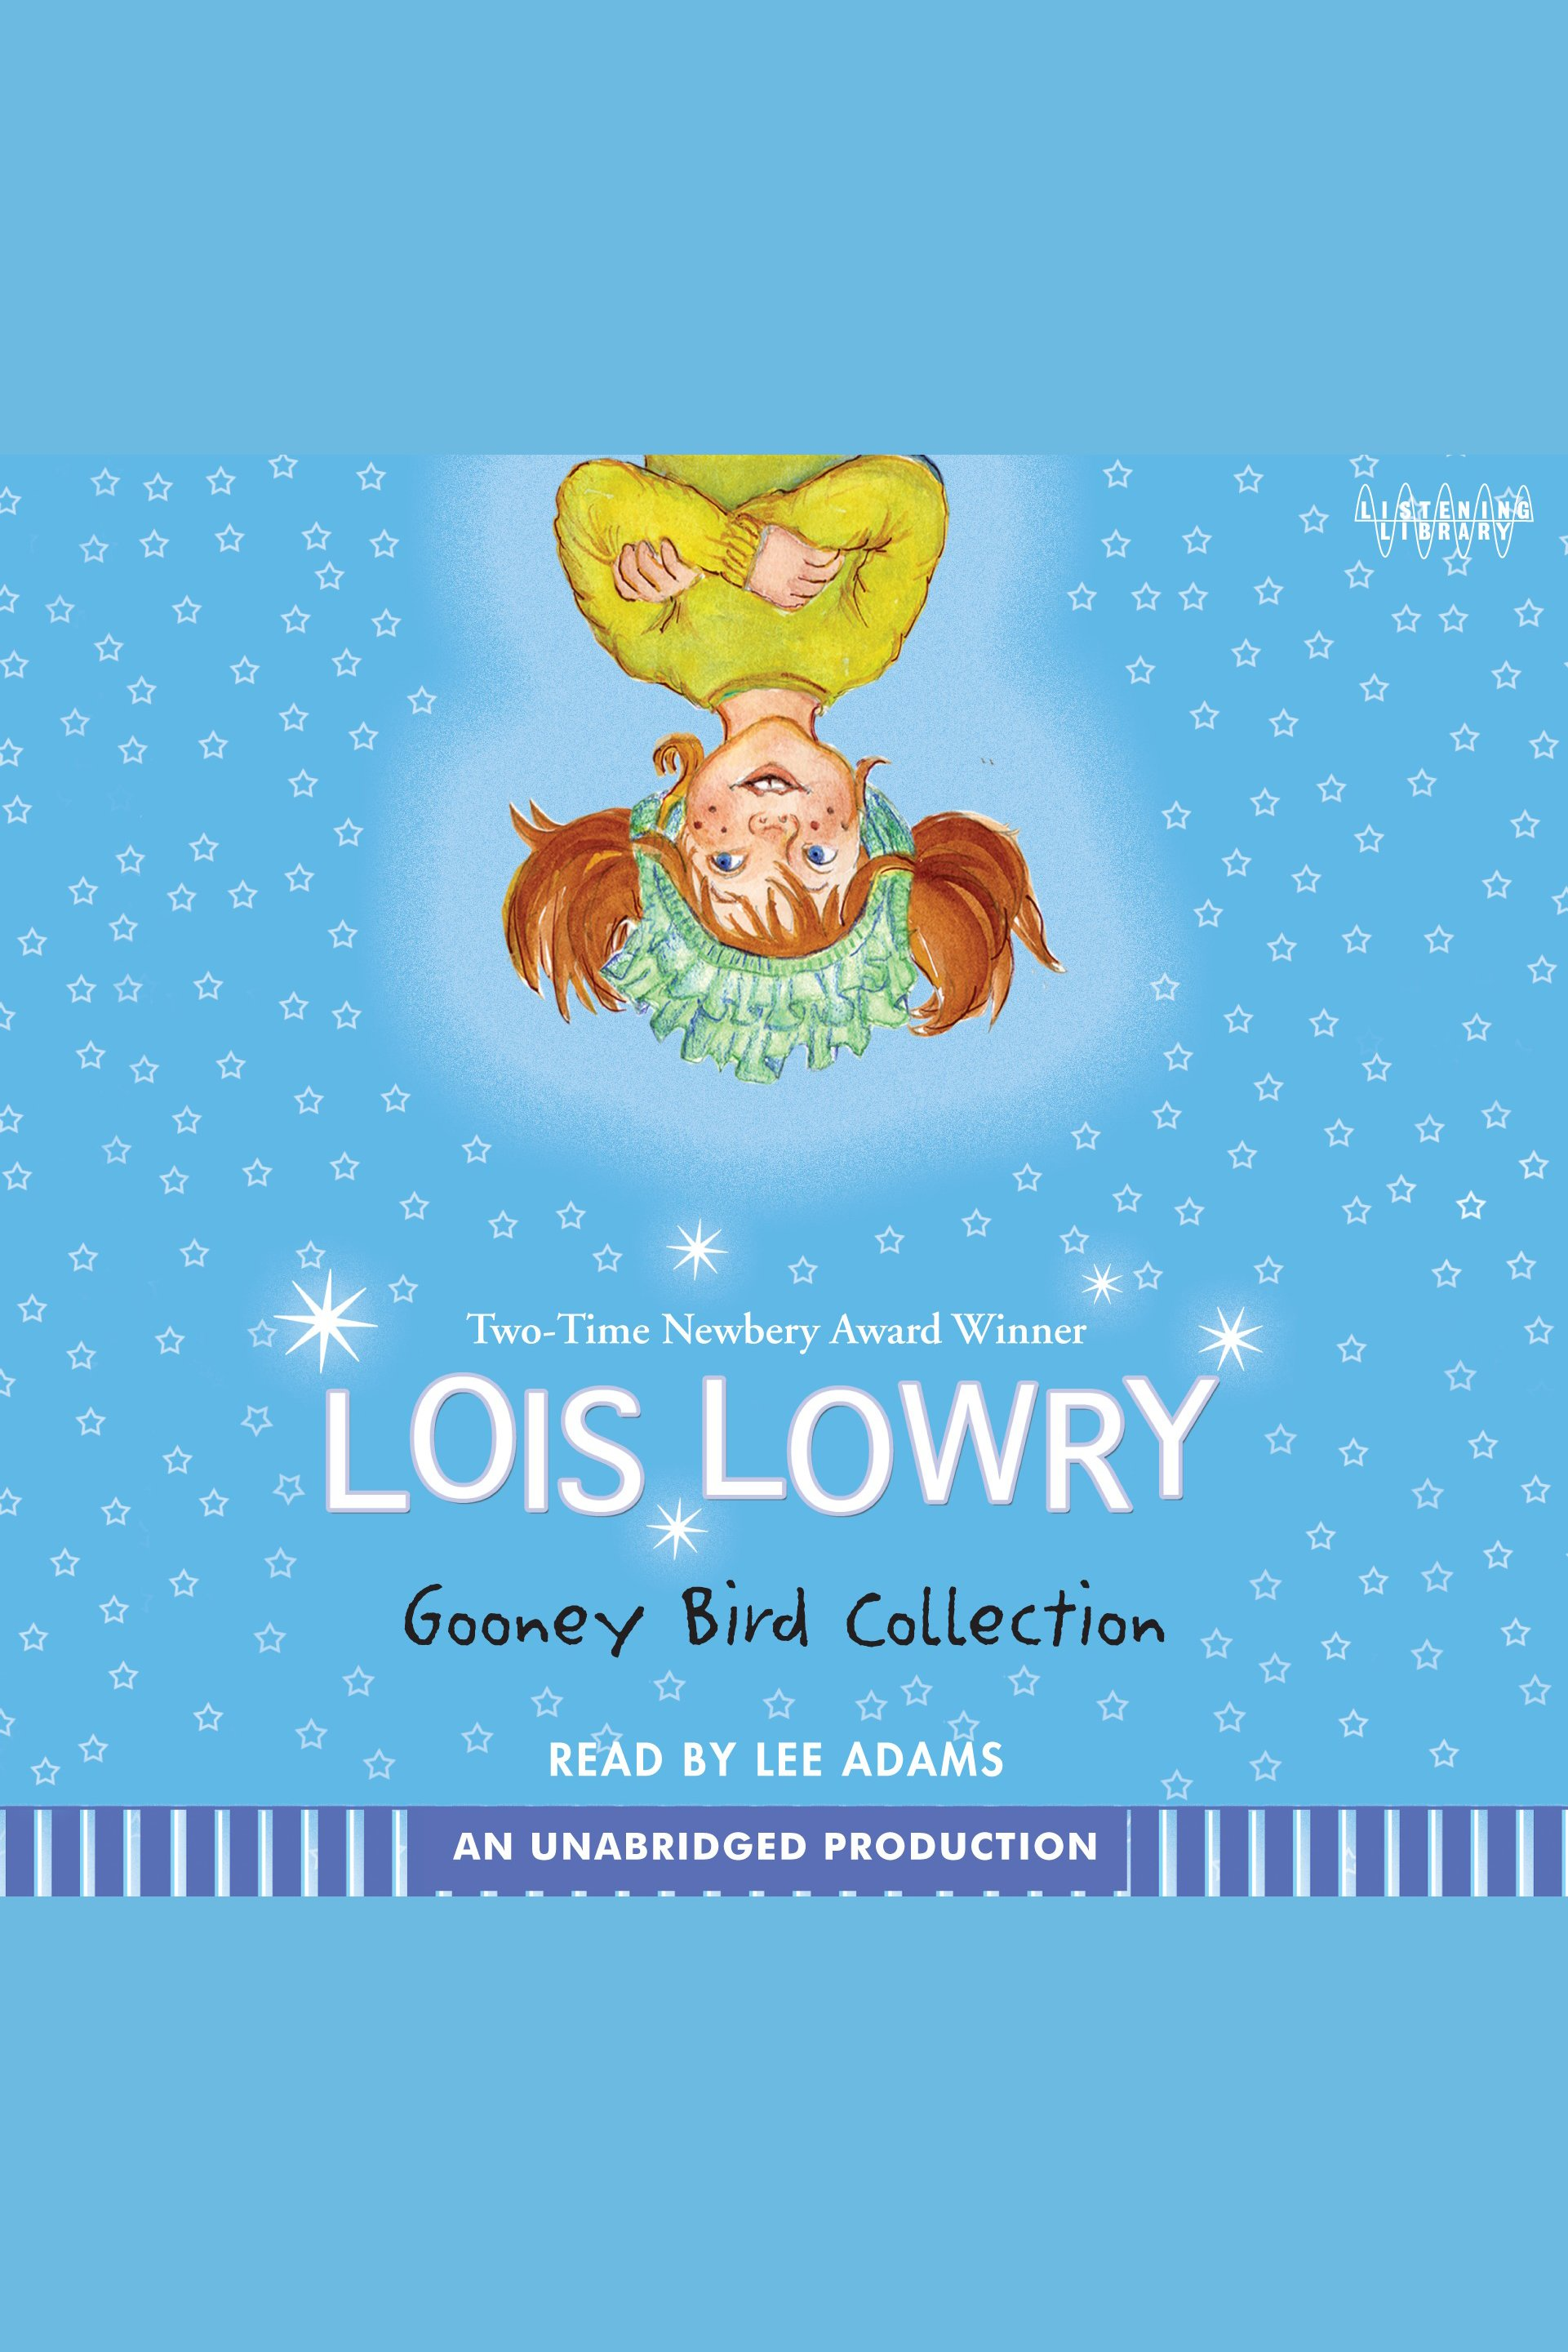 The Gooney Bird collection cover image